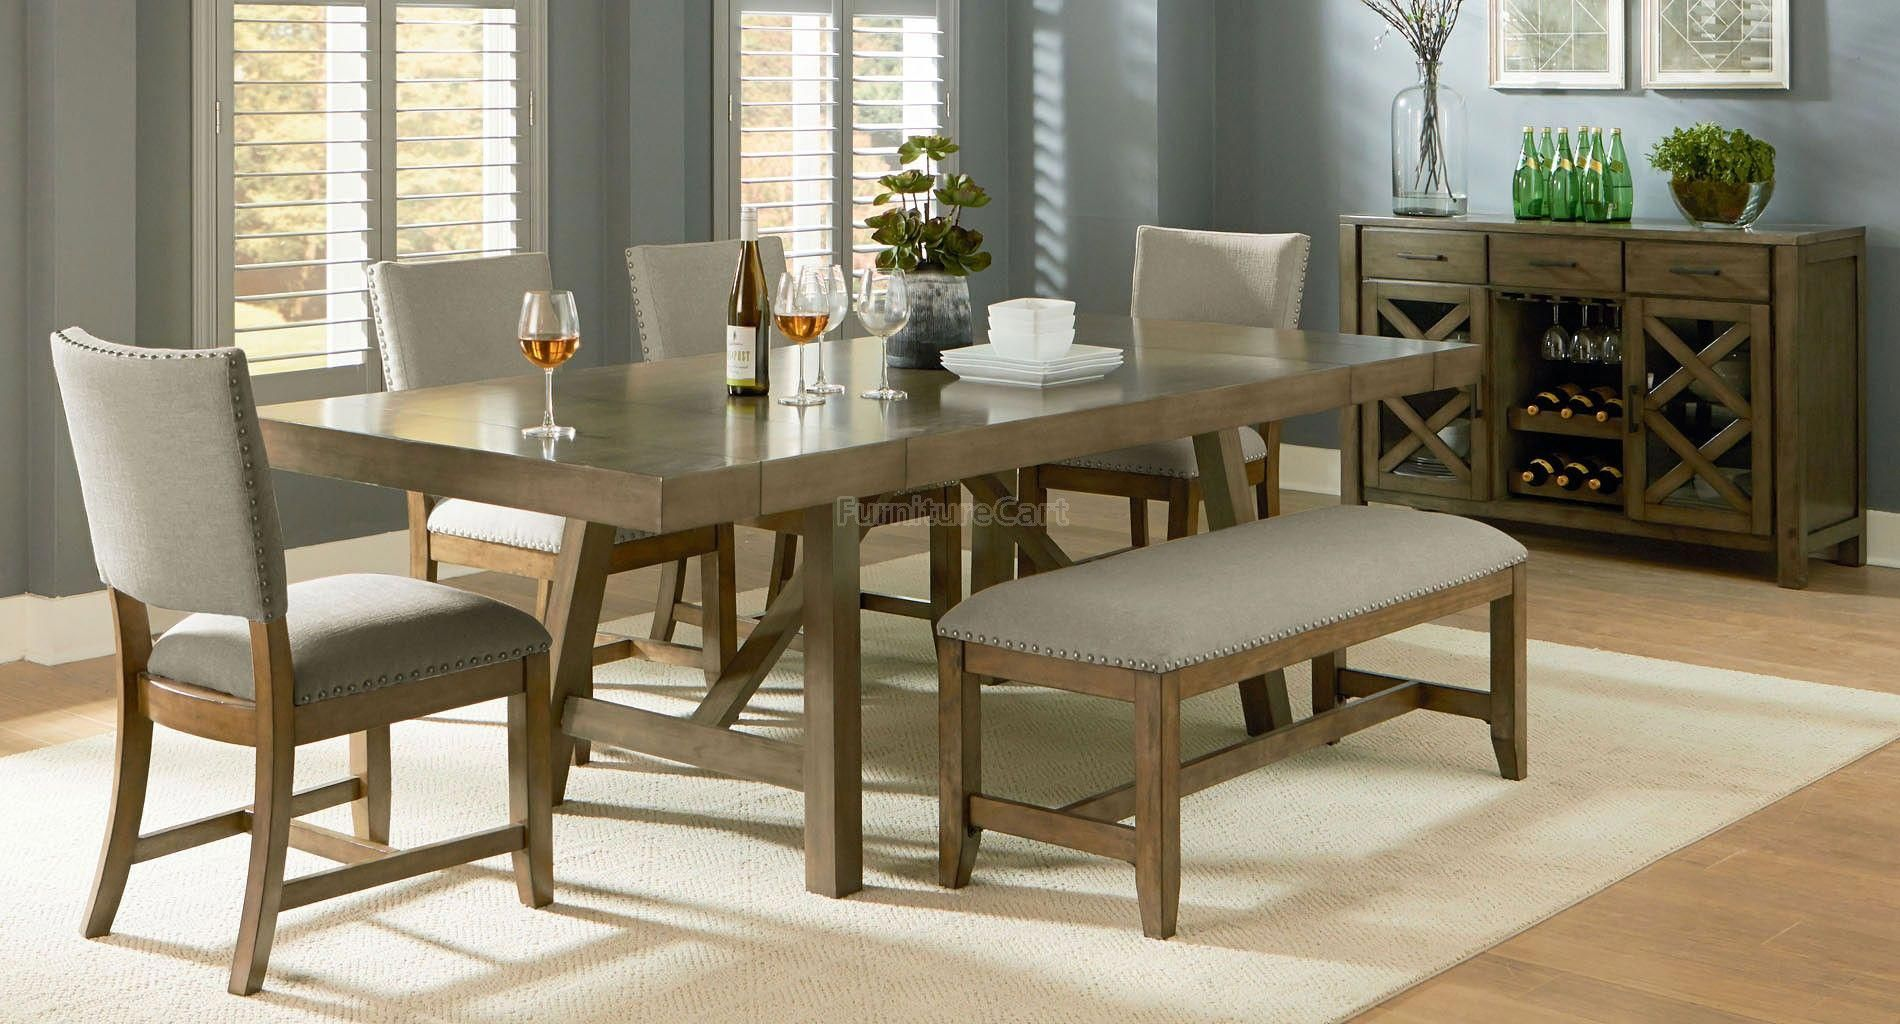 Omaha Dining Room Set w/ Upholstered Bench (Grey) images